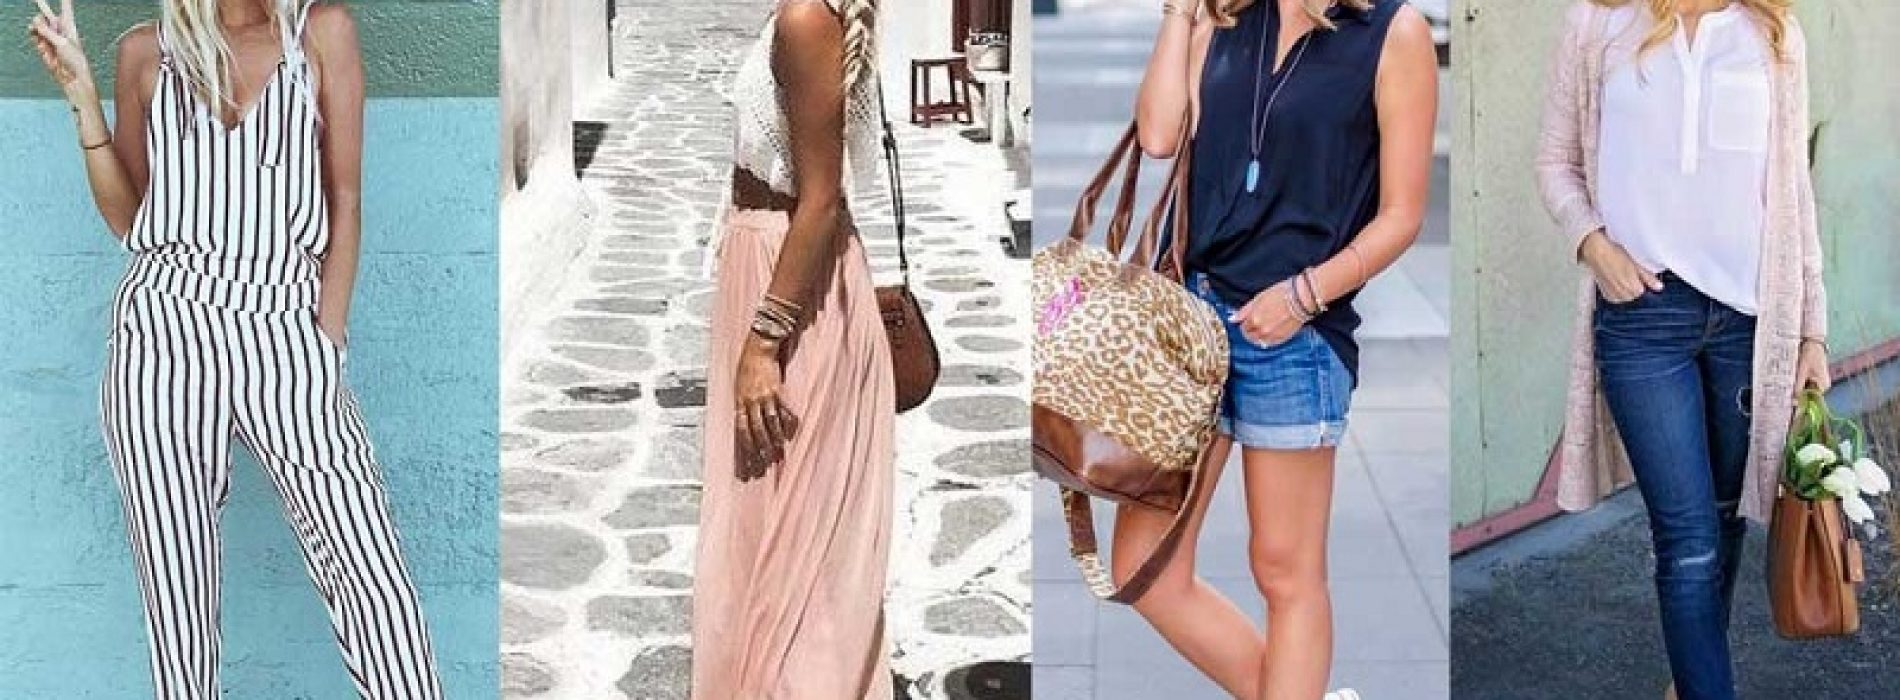 6 Funs and Festive Outfit Ideas Ideal for Your Vacation